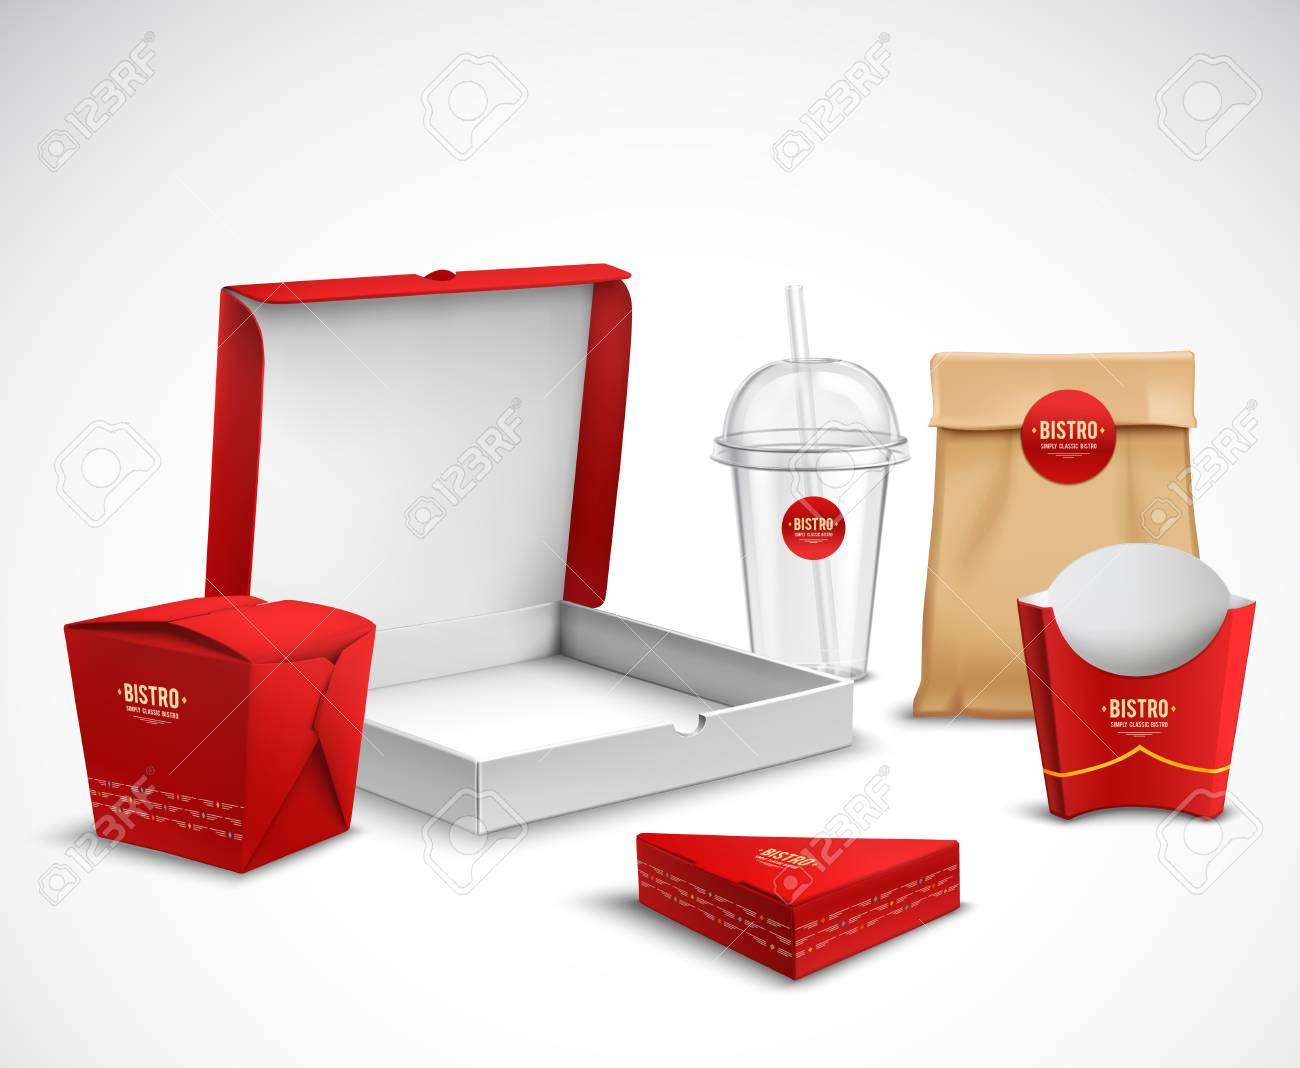 Fast food packaging corporate identity realistic templates samples set red white natural with pizza box vector illustration - 88540334